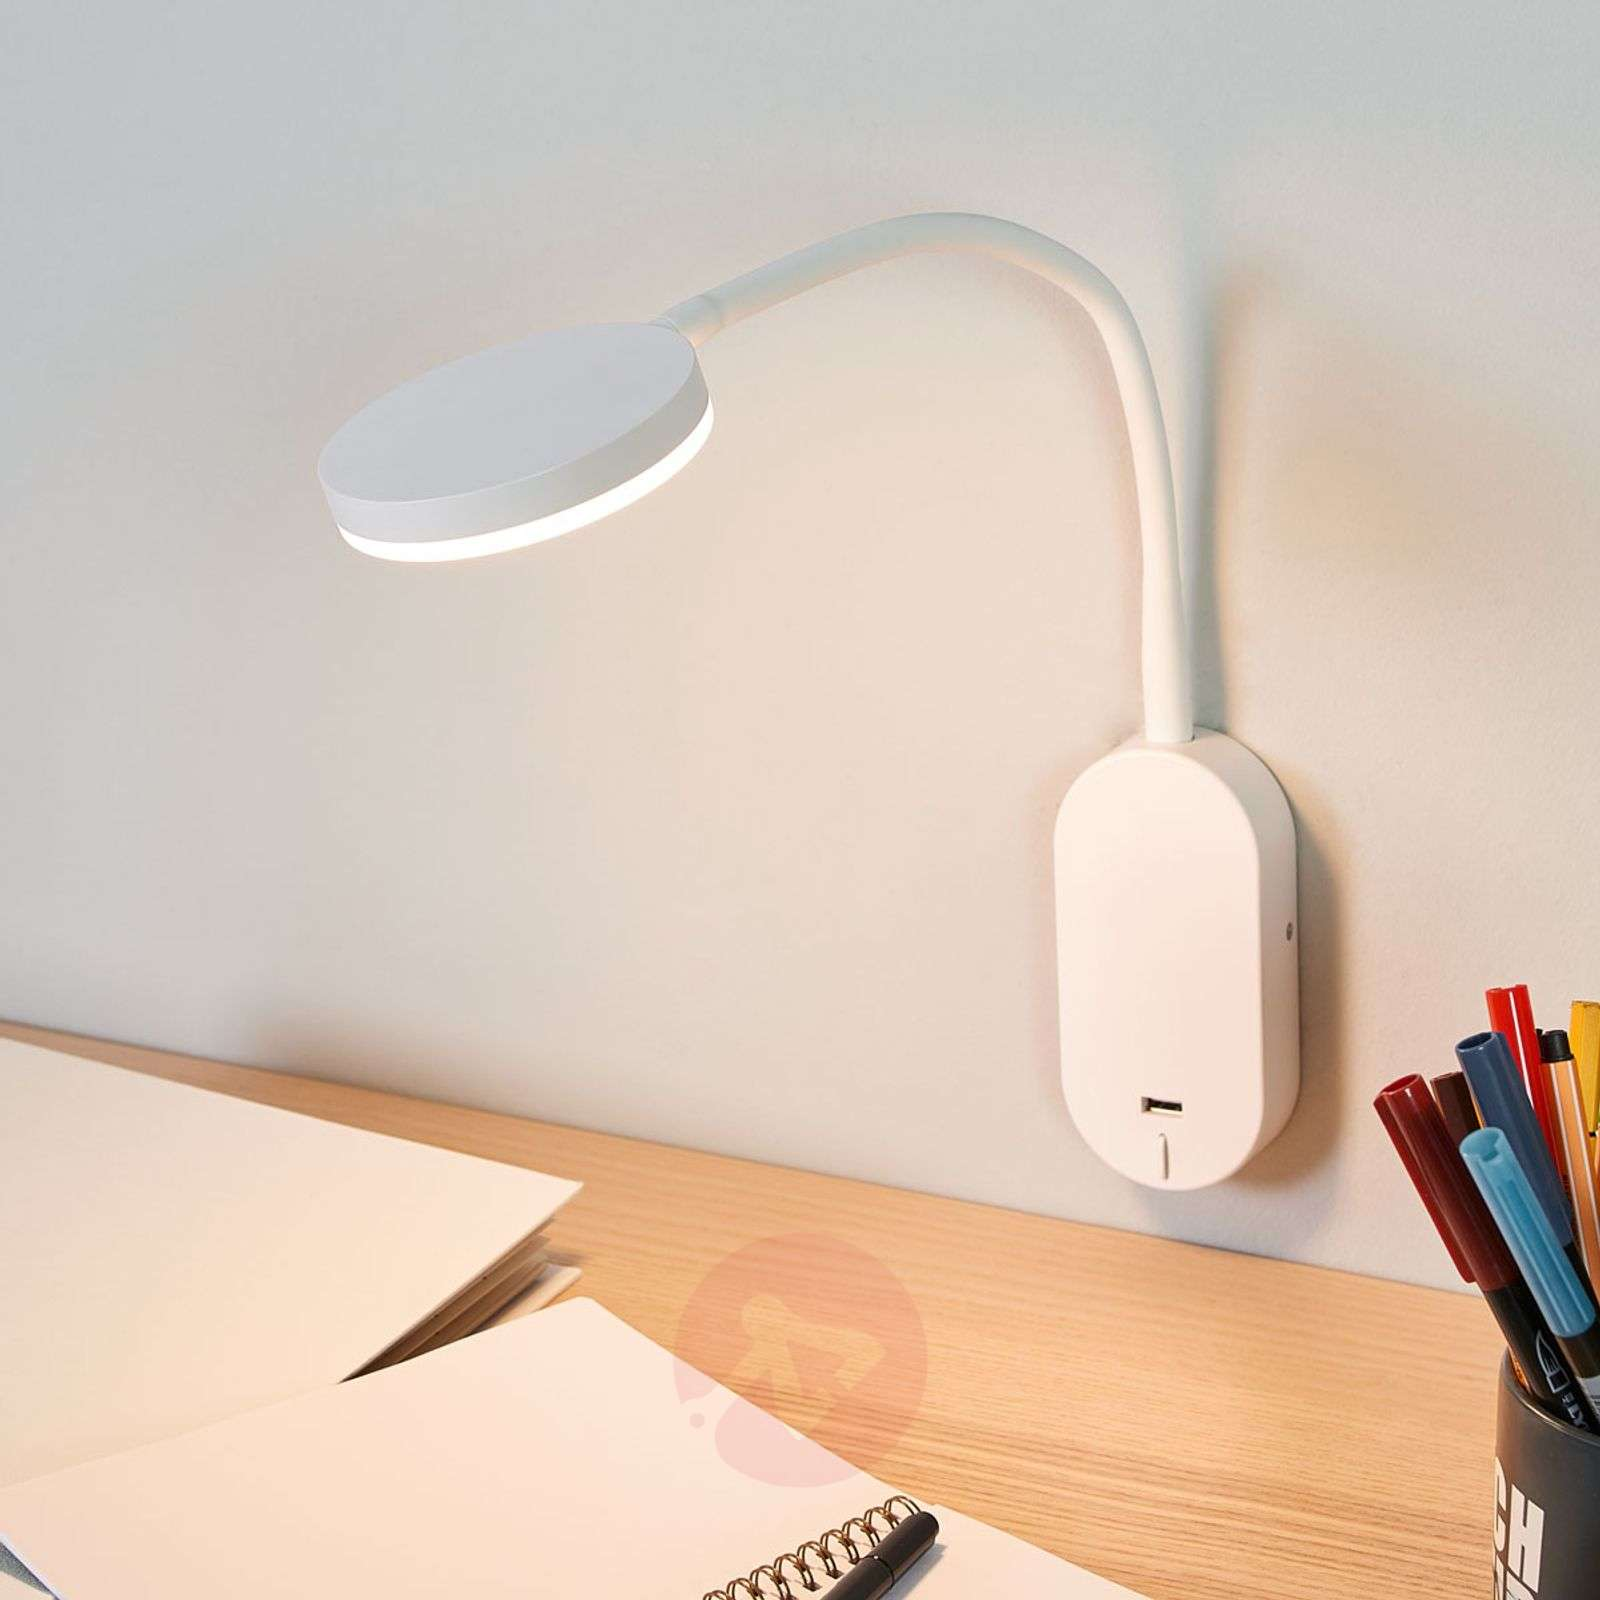 Acquista applique led milow con braccio flex e porta usb lampade.it